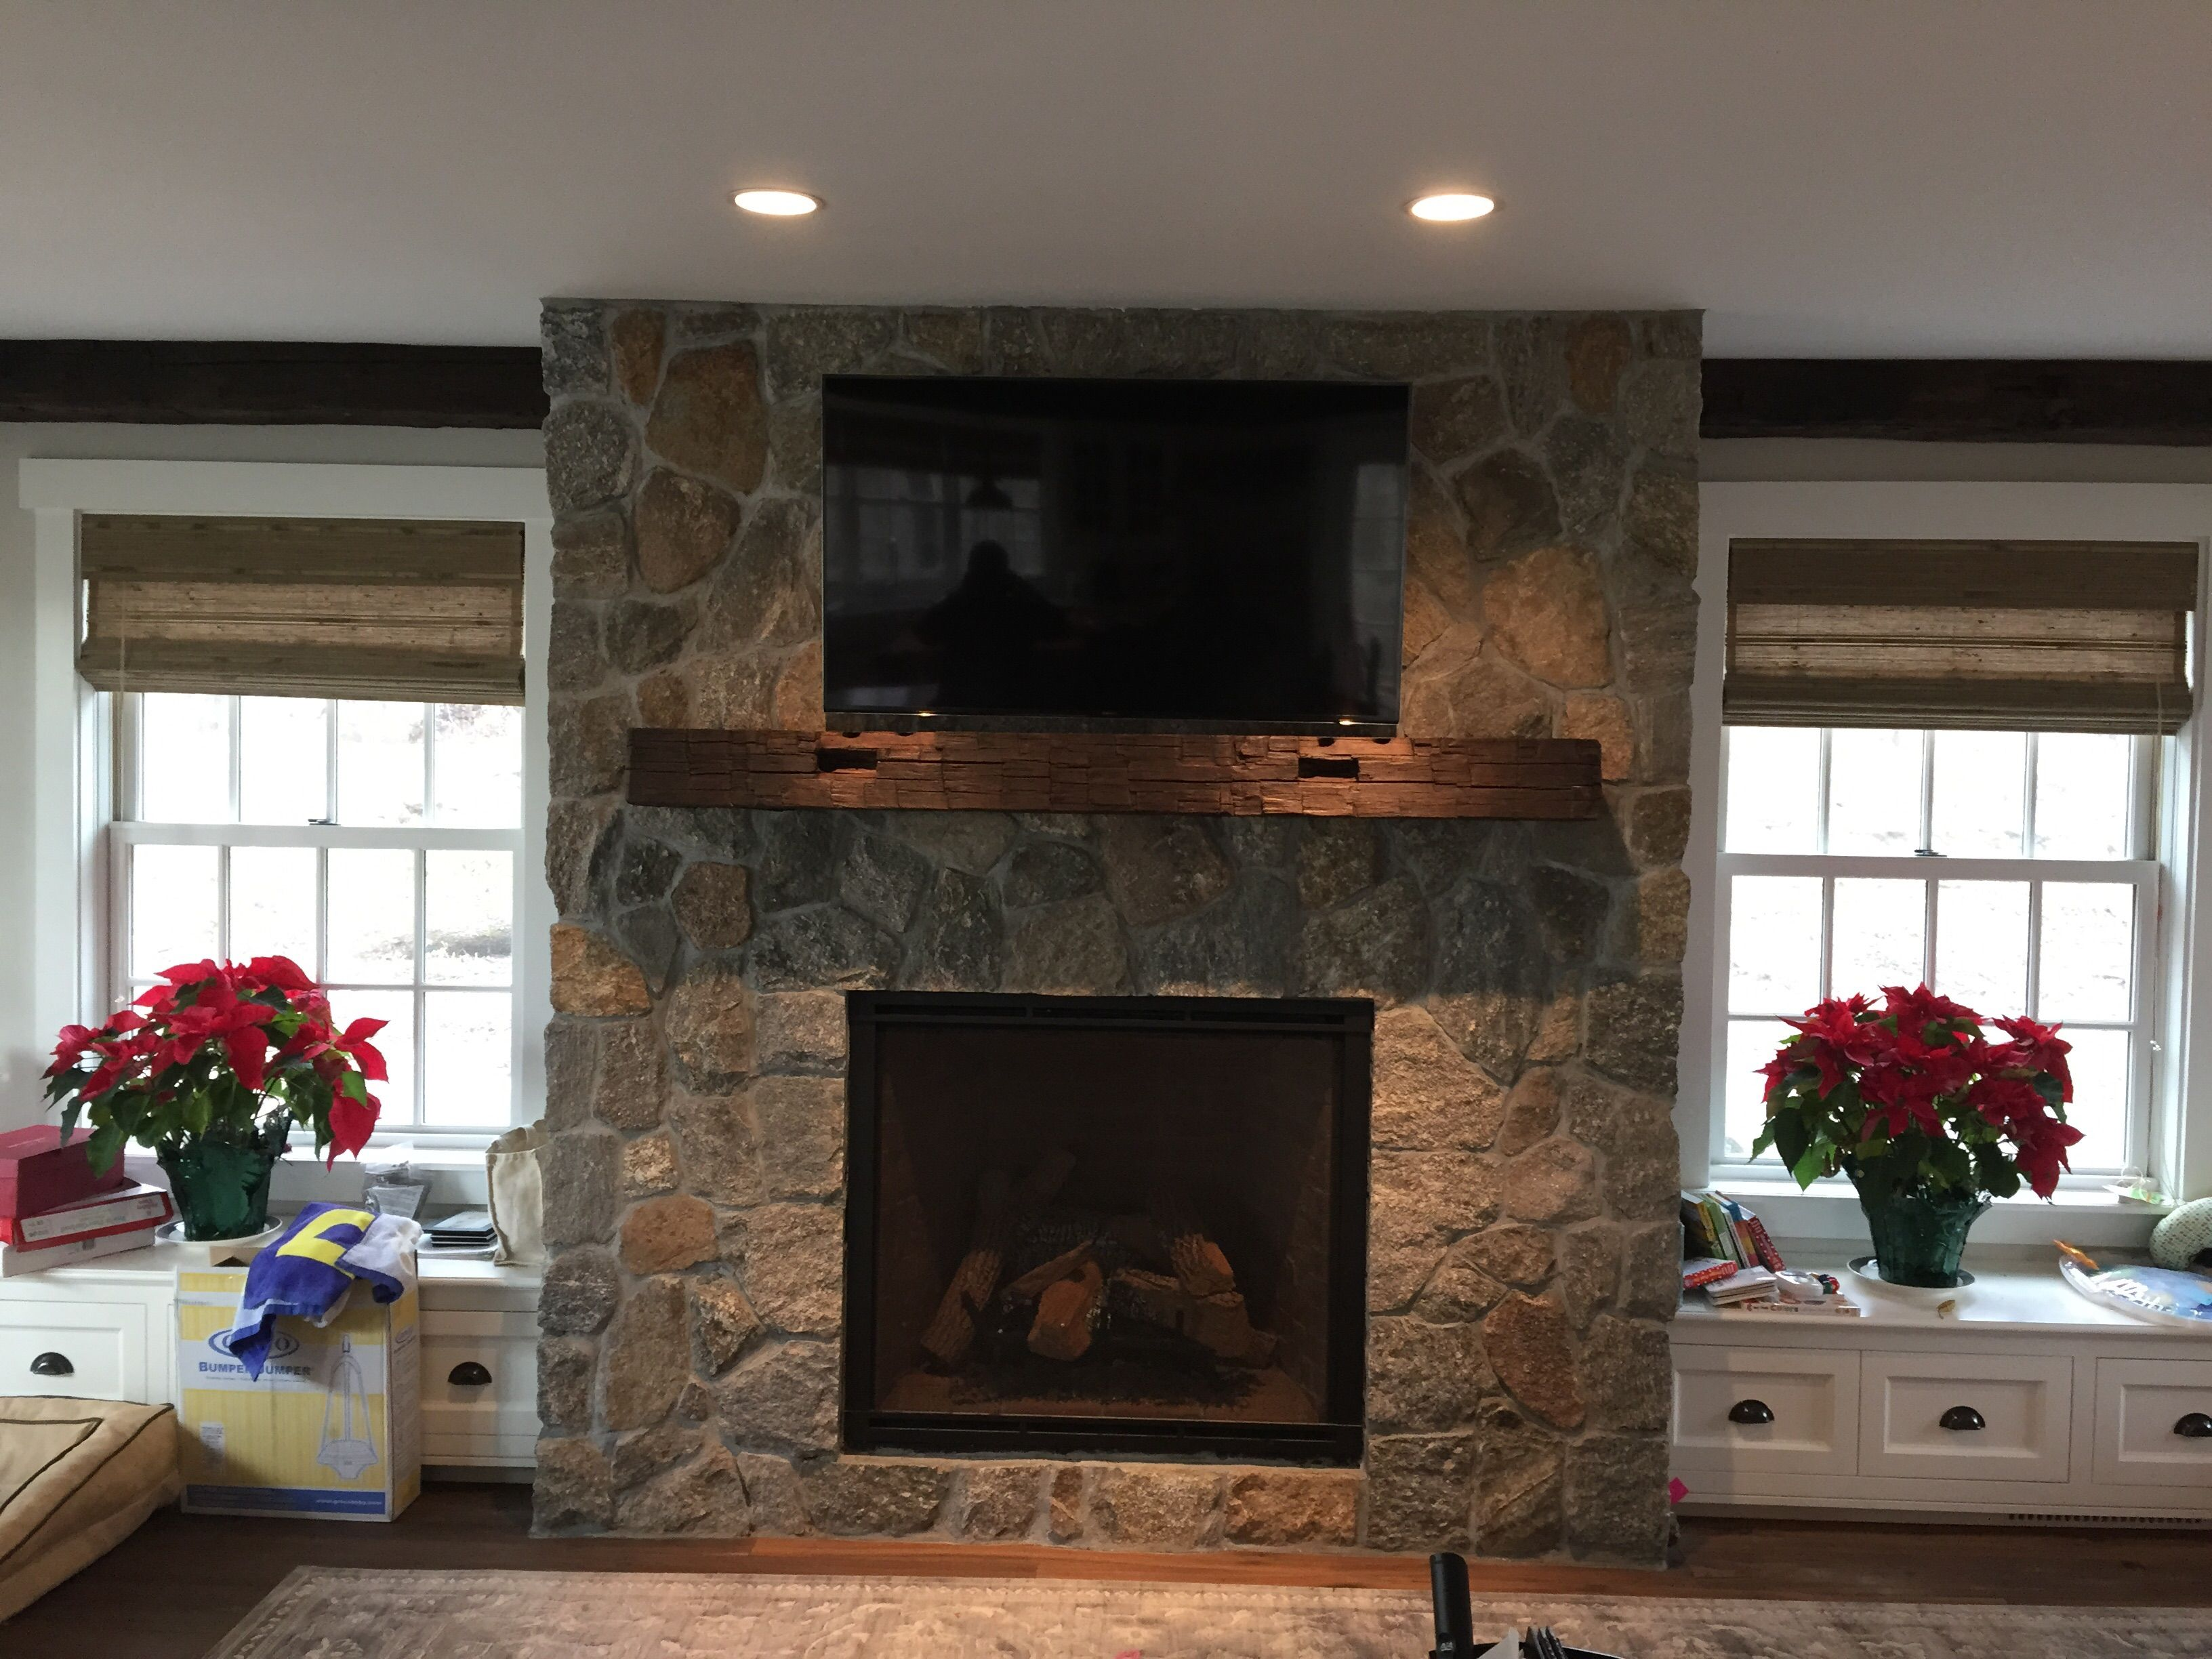 Hand Made Rustic Fireplace Mantel By M.Karl, LLC